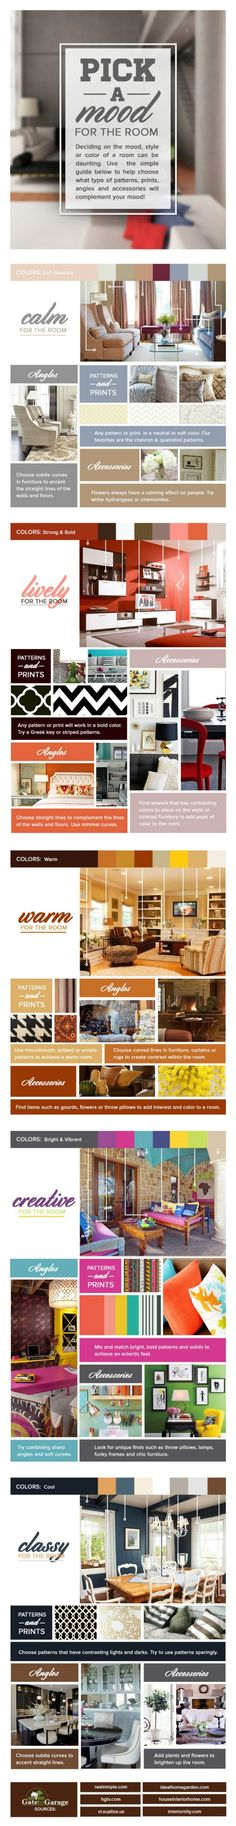 50 Amazingly Clever Cheat Sheets To Simplify Home Decorating Projects - Image Editing - Edit image online tool. - Colors and Moods Infographic 50 Amazingly Clever Cheat Sheets To Simplify Home Decorating Projects Interior Paint Colors, Interior Design Tips, Interior And Exterior, Interior Decorating, Farmhouse Interior, Interior Painting, Modern Interior, Apartment Painting, Cosy Interior